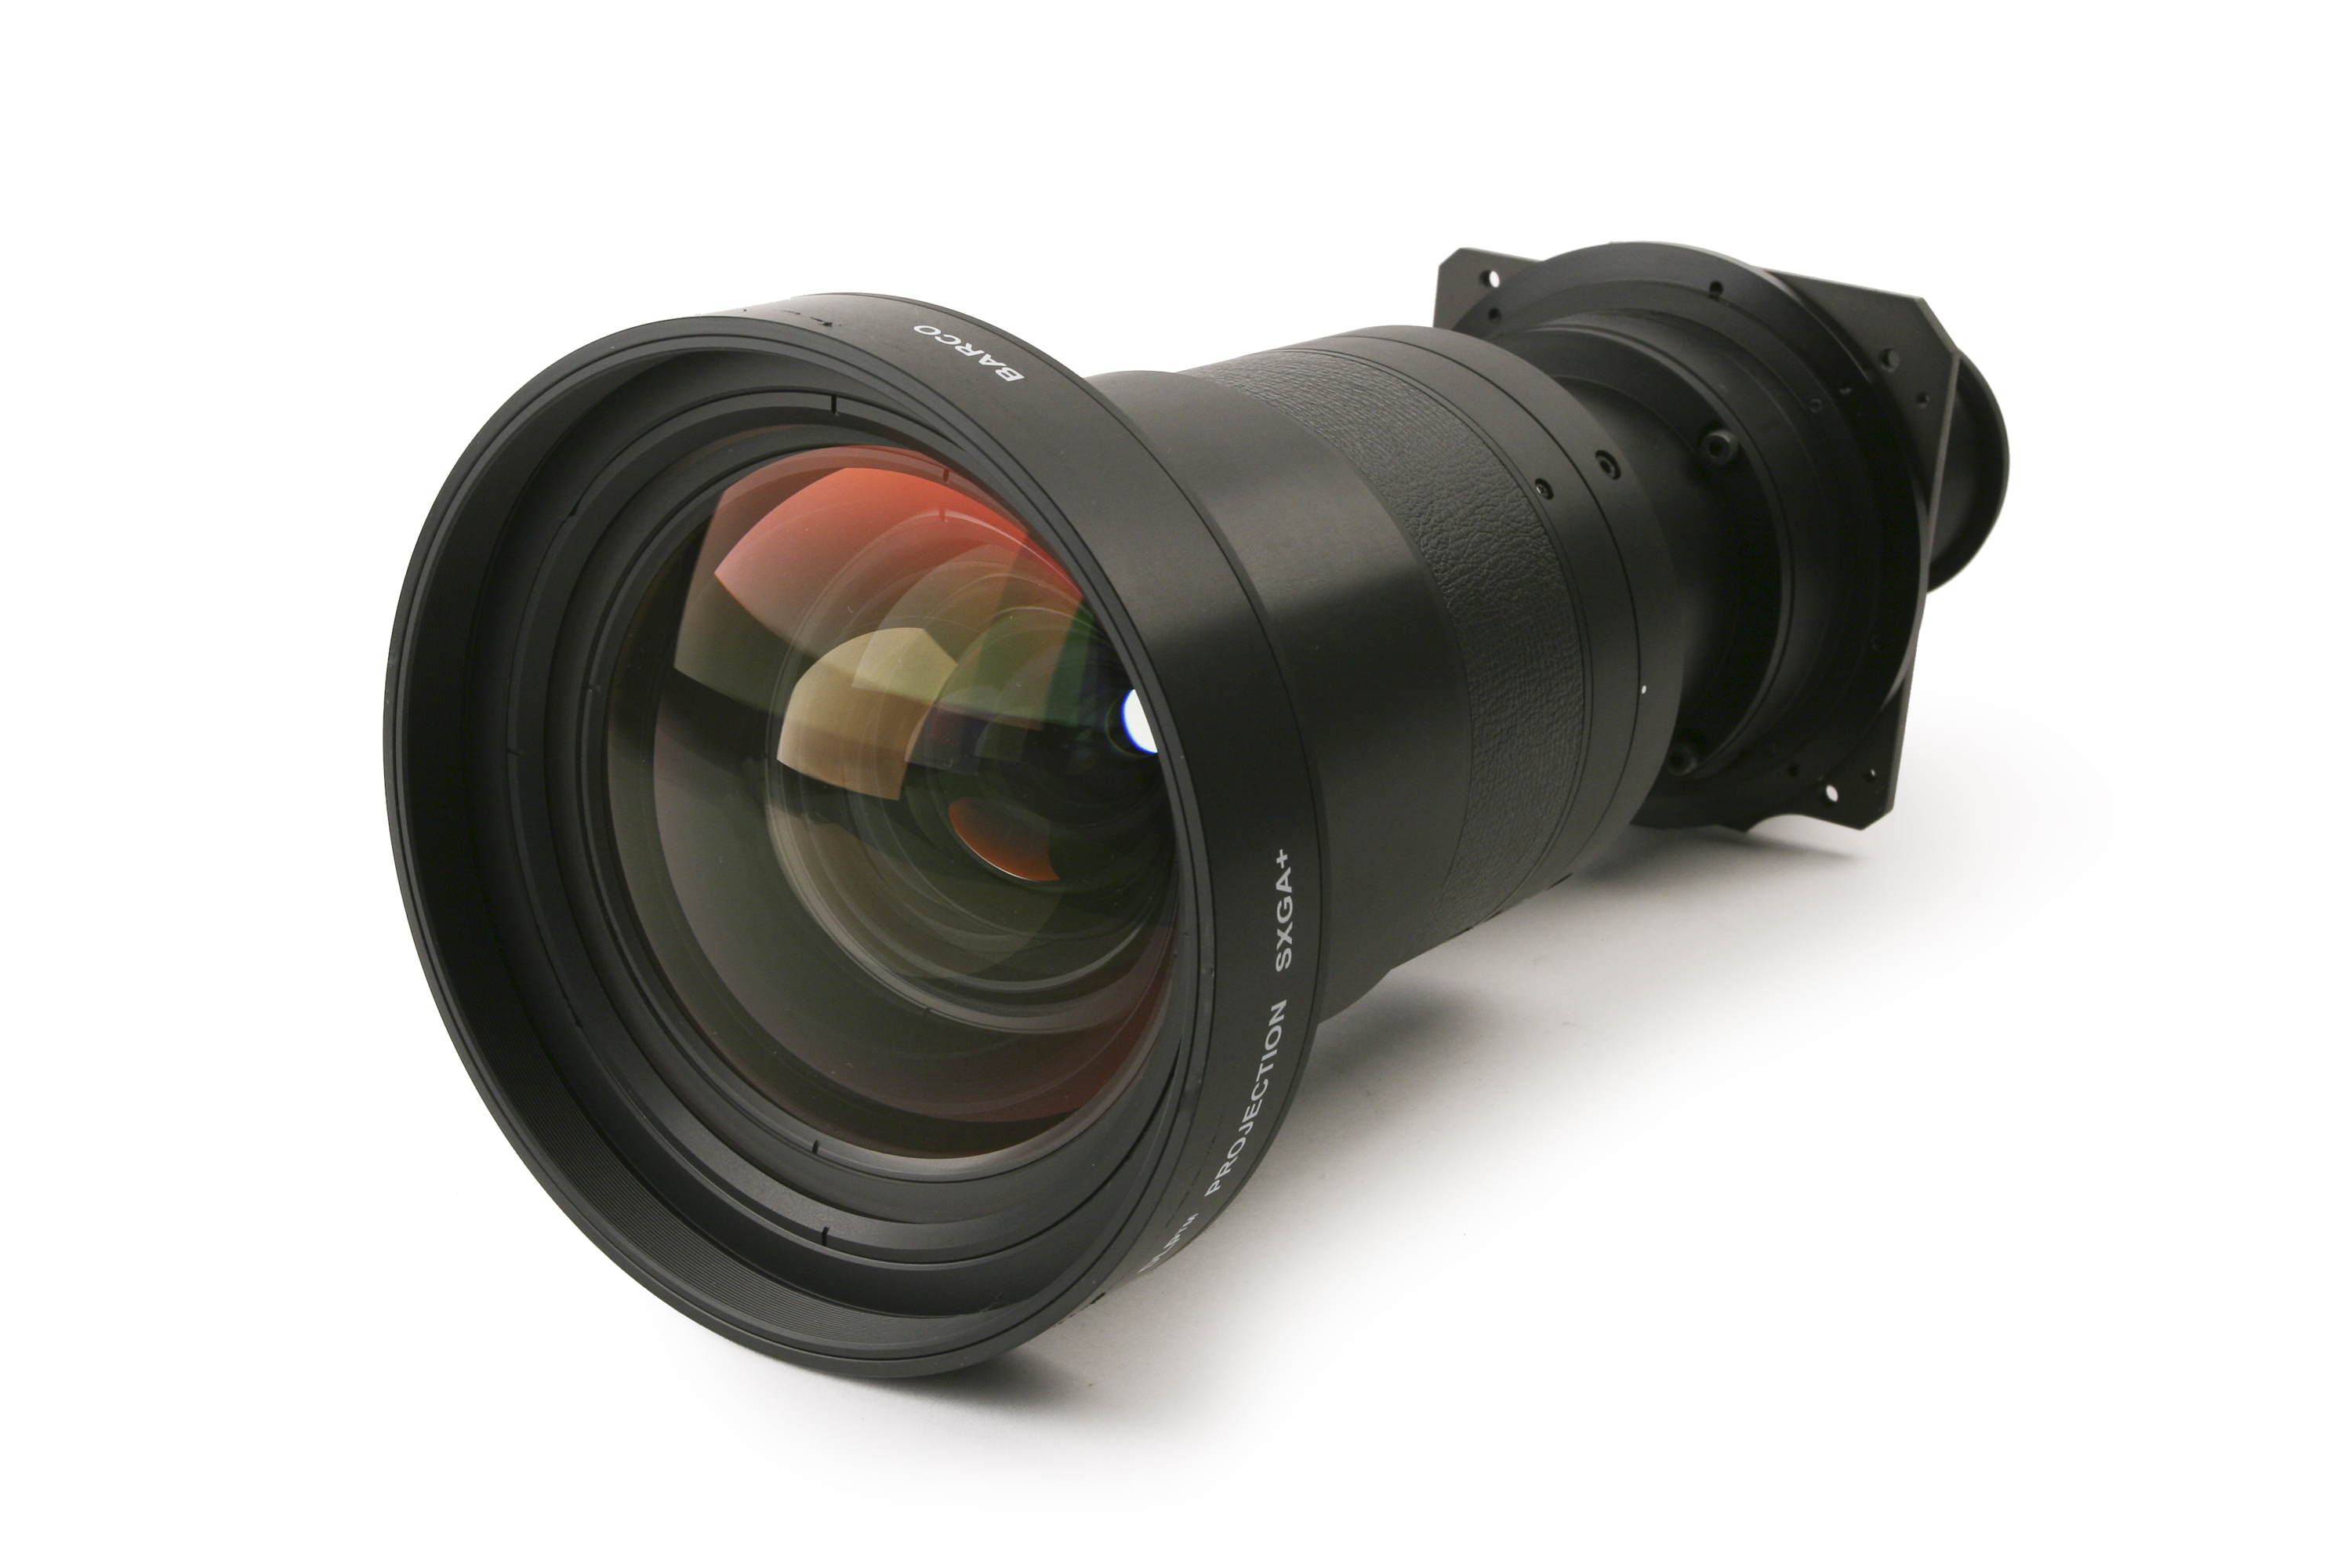 Barco TLD 1.2:1 Lens